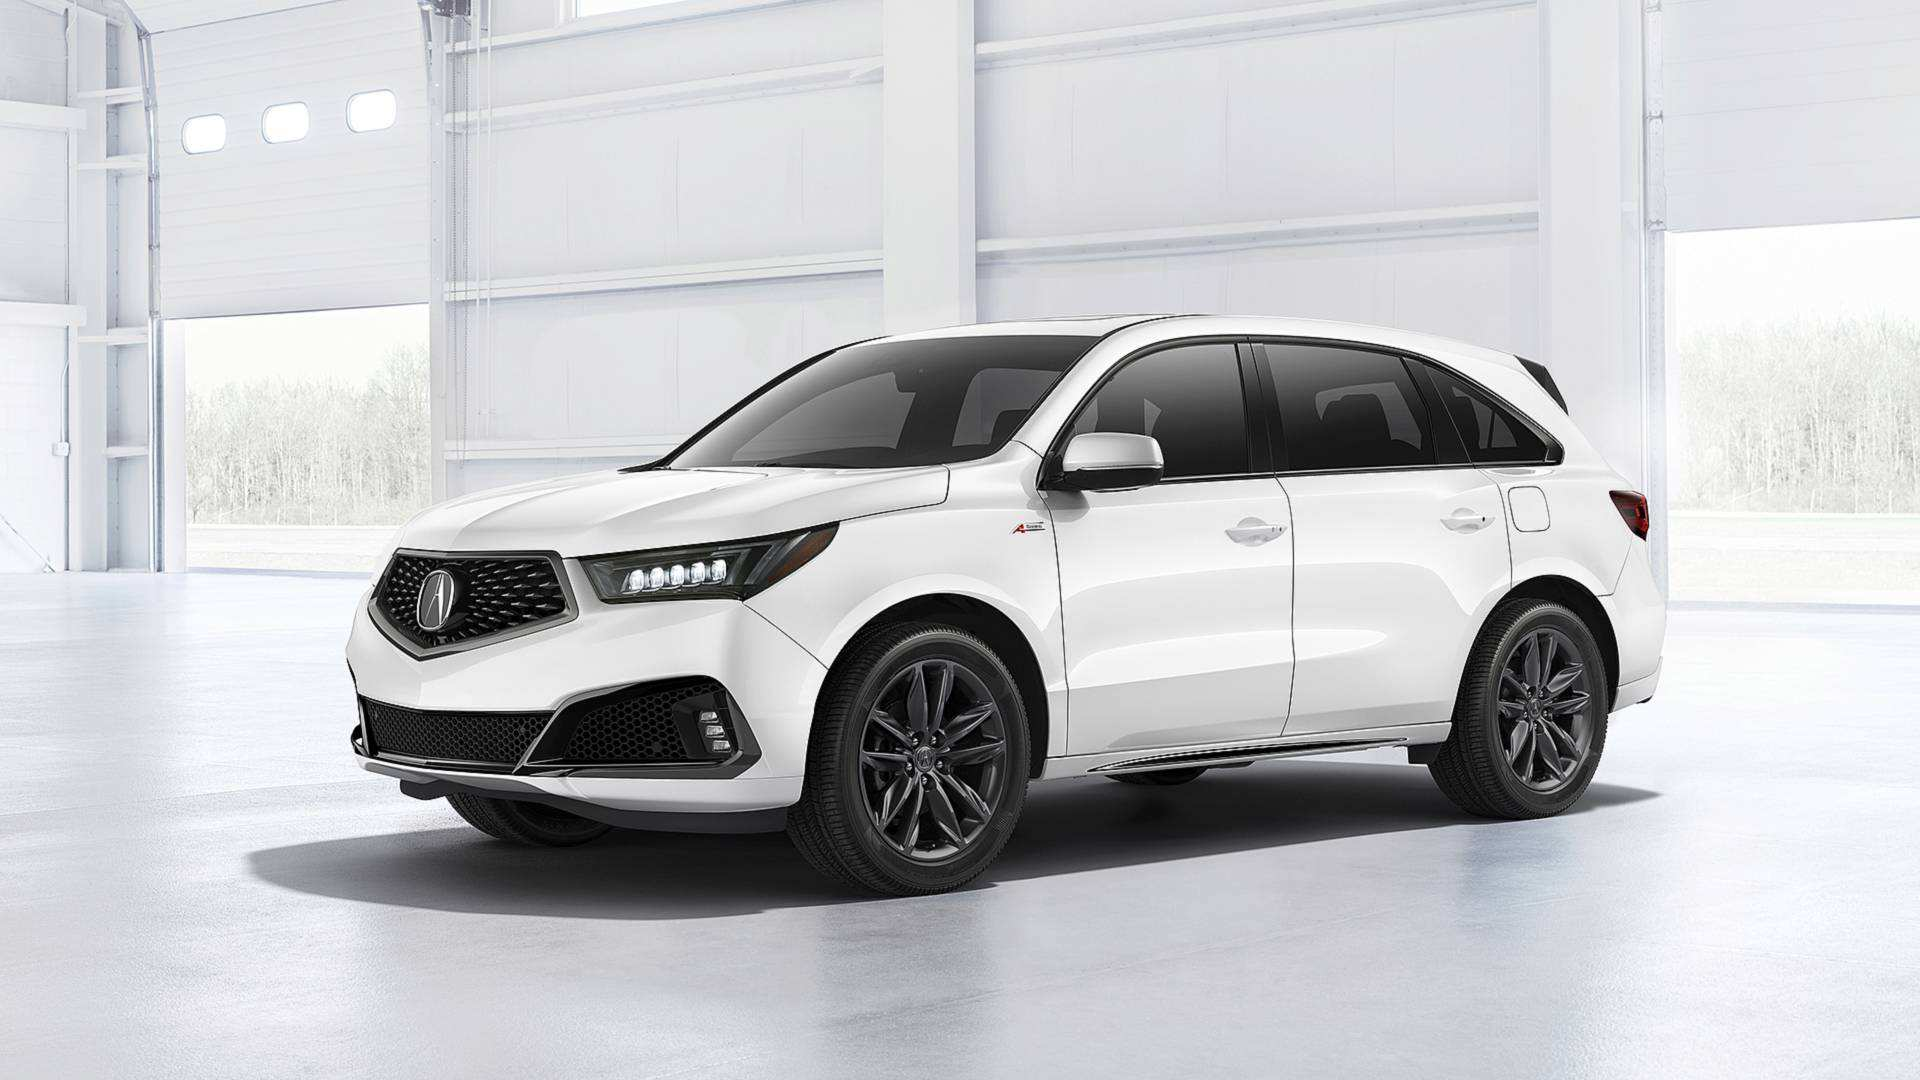 34 All New Acura Mdx 2020 Redesign Rumors